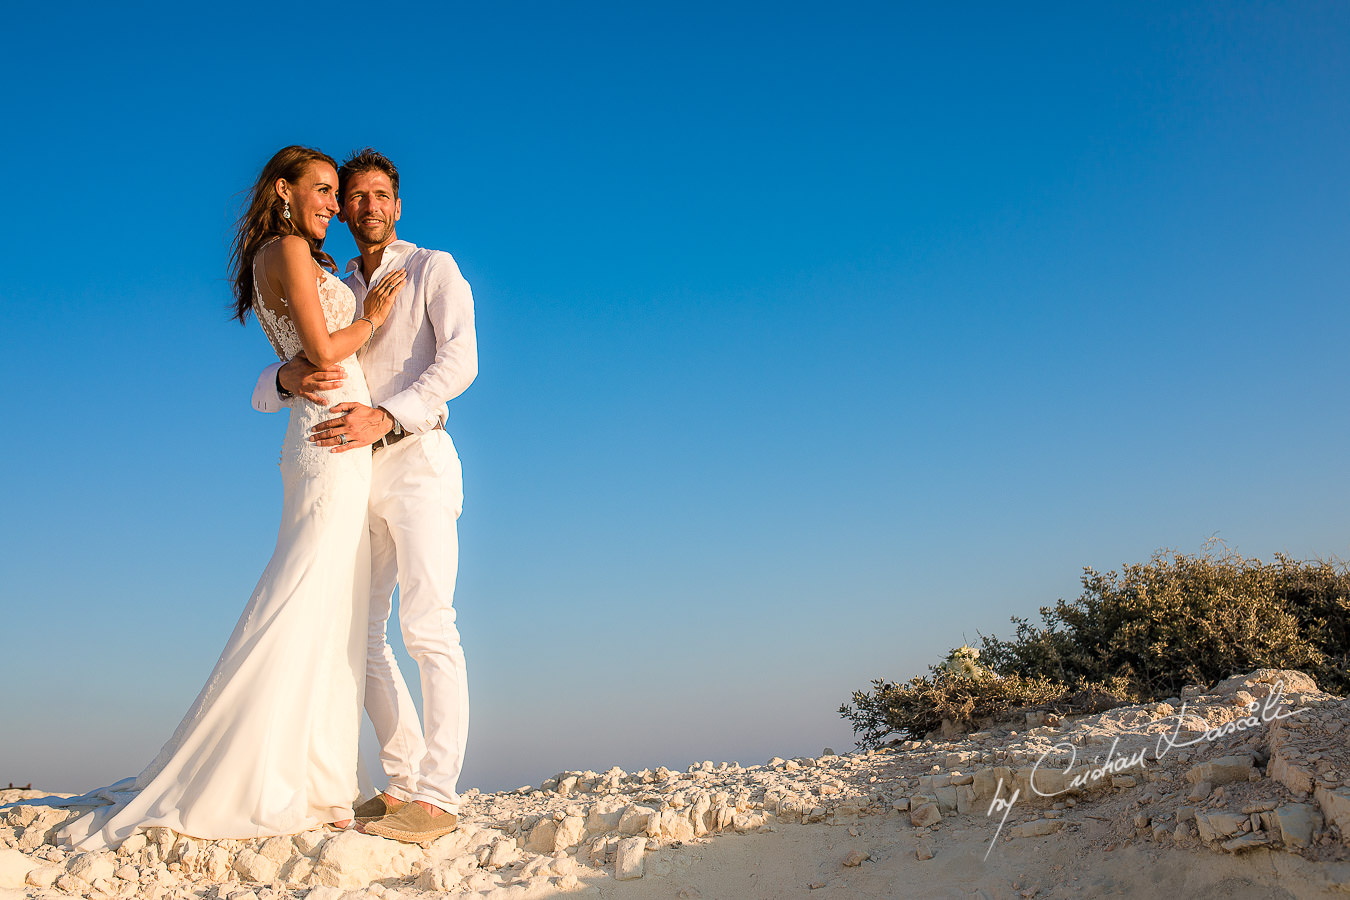 After wedding photoshoot captured by Cyprus Photographer Cristian Dascalu during a beautiful wedding at Cap St. George in Paphos.